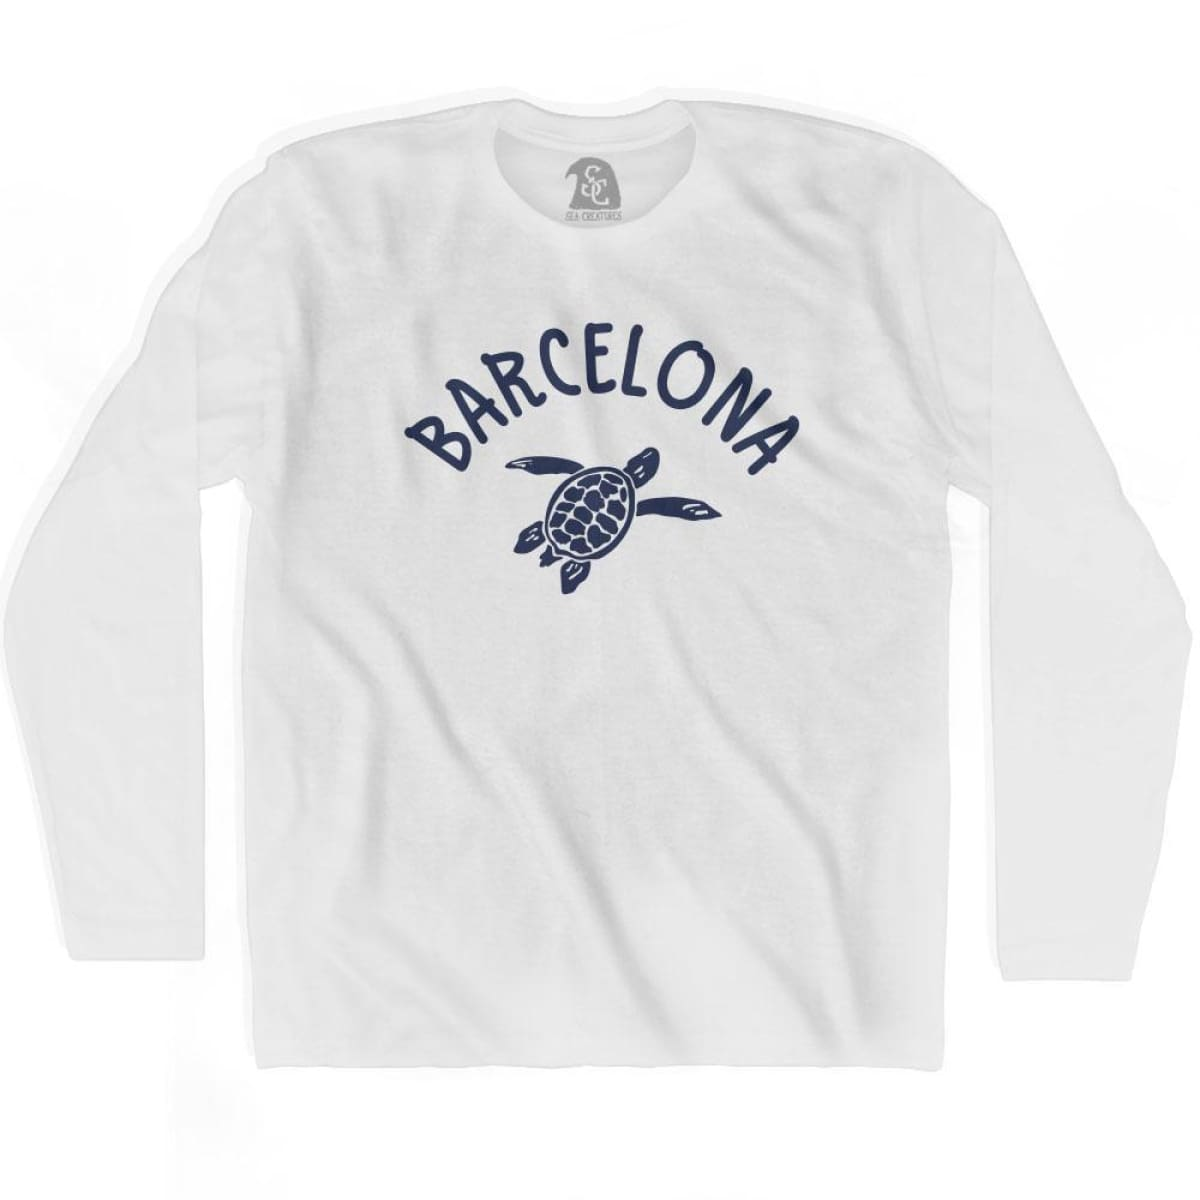 Barcelona Beach Sea Turtle Adult Cotton Long Sleeve T-shirt - White / Adult Small - Turtle T-shirts